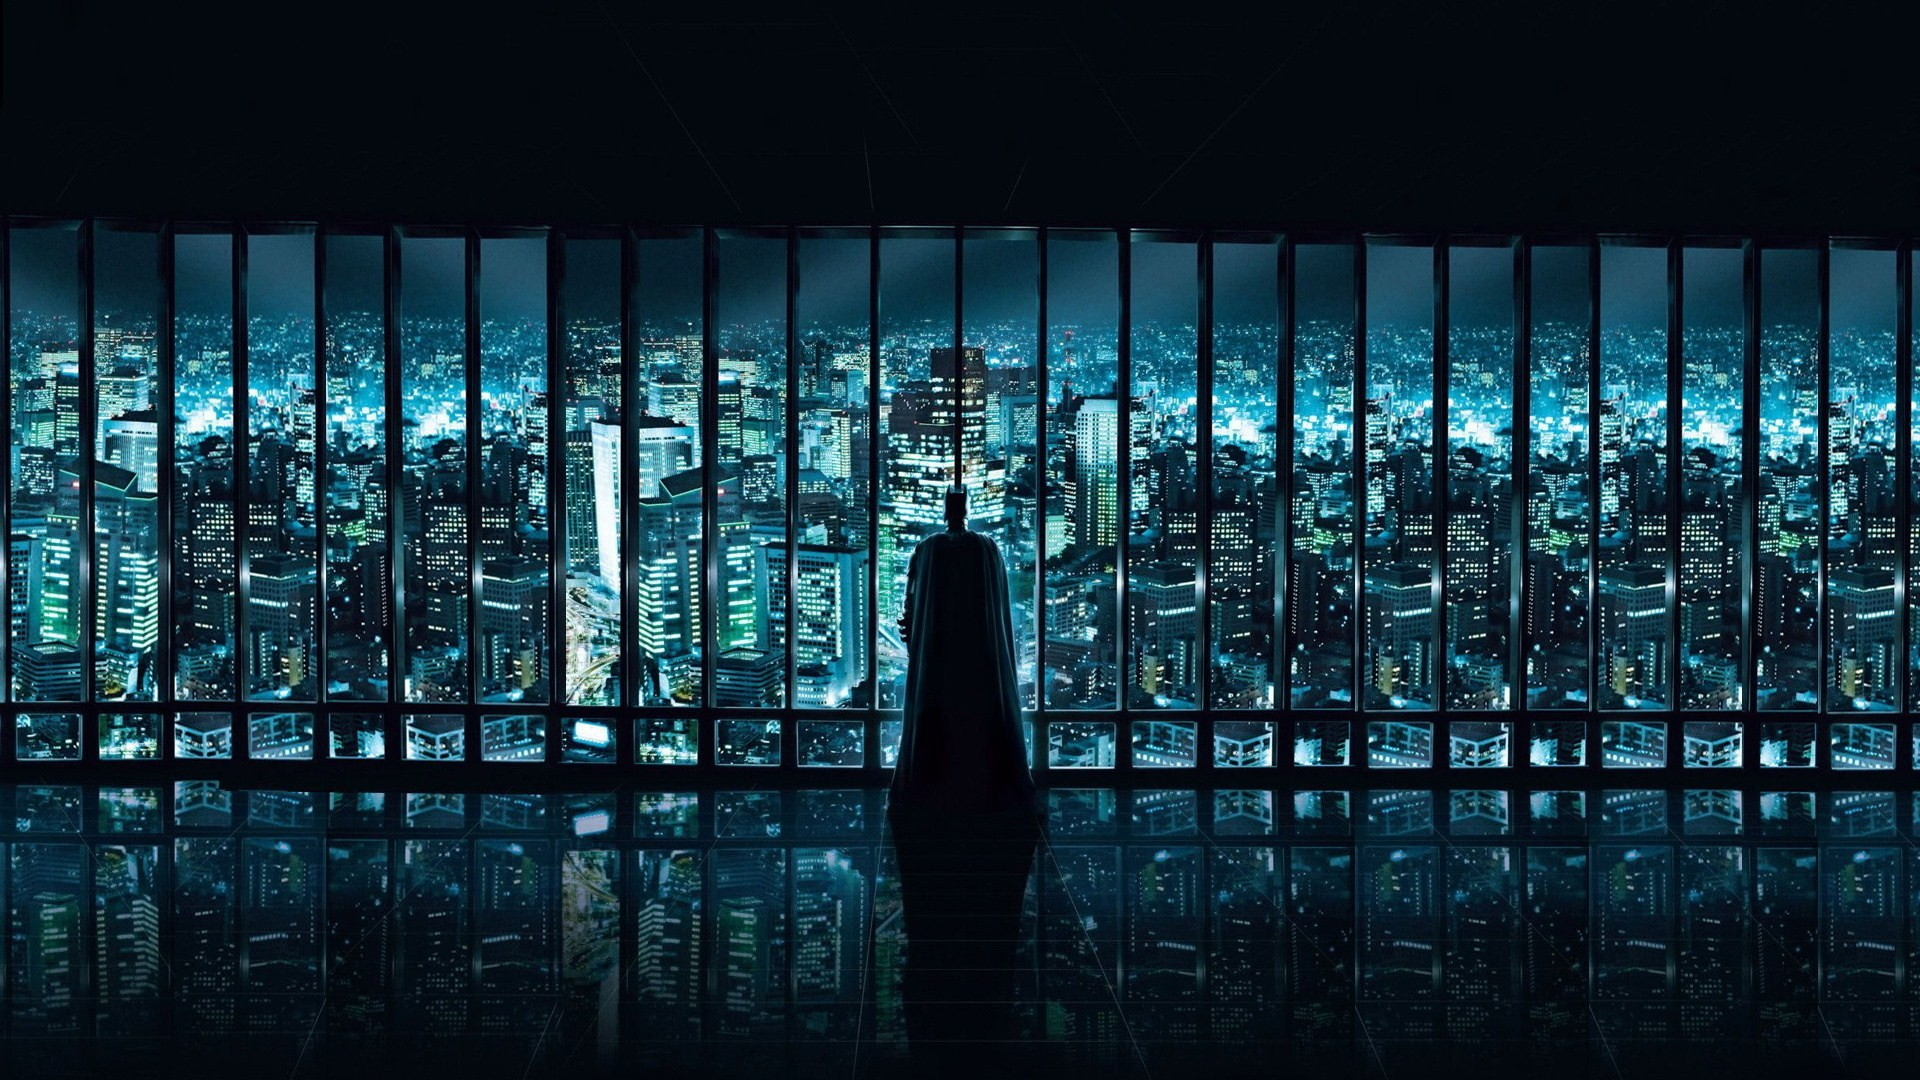 1920x1080 Batman - The Dark Knight Returns - Top 10 HD Batman Movie Desktop Wallpapers